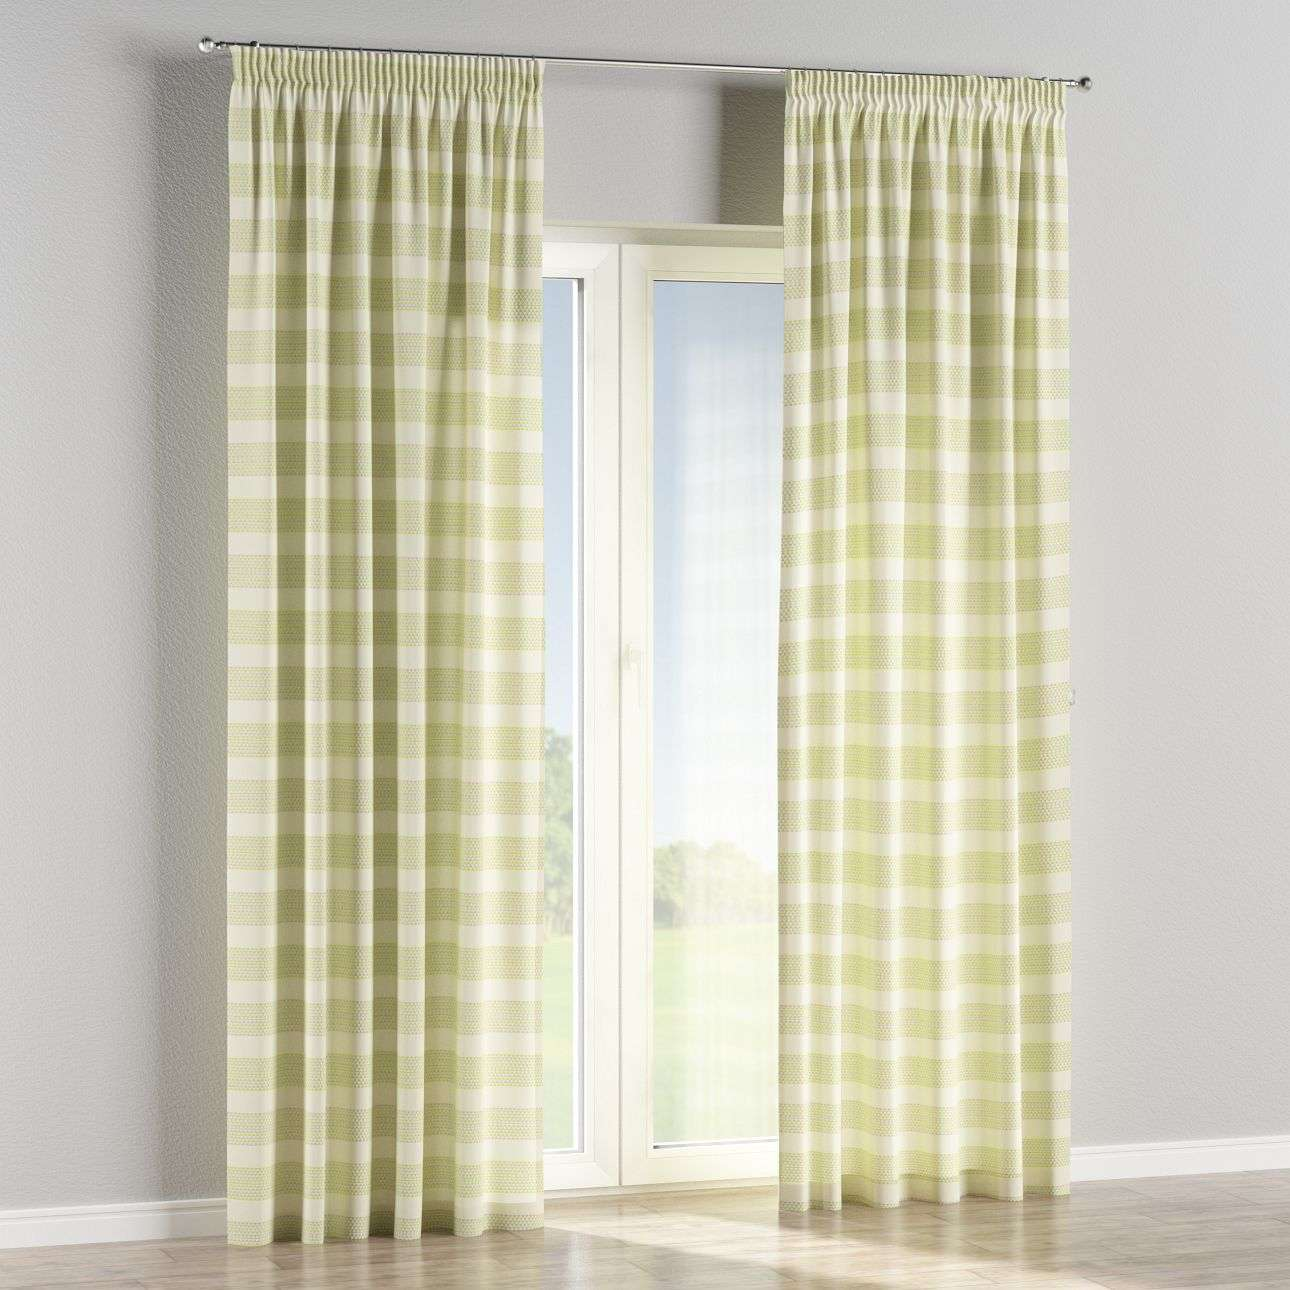 Pencil pleat curtains 130 x 260 cm (51 x 102 inch) in collection Rustica, fabric: 140-35